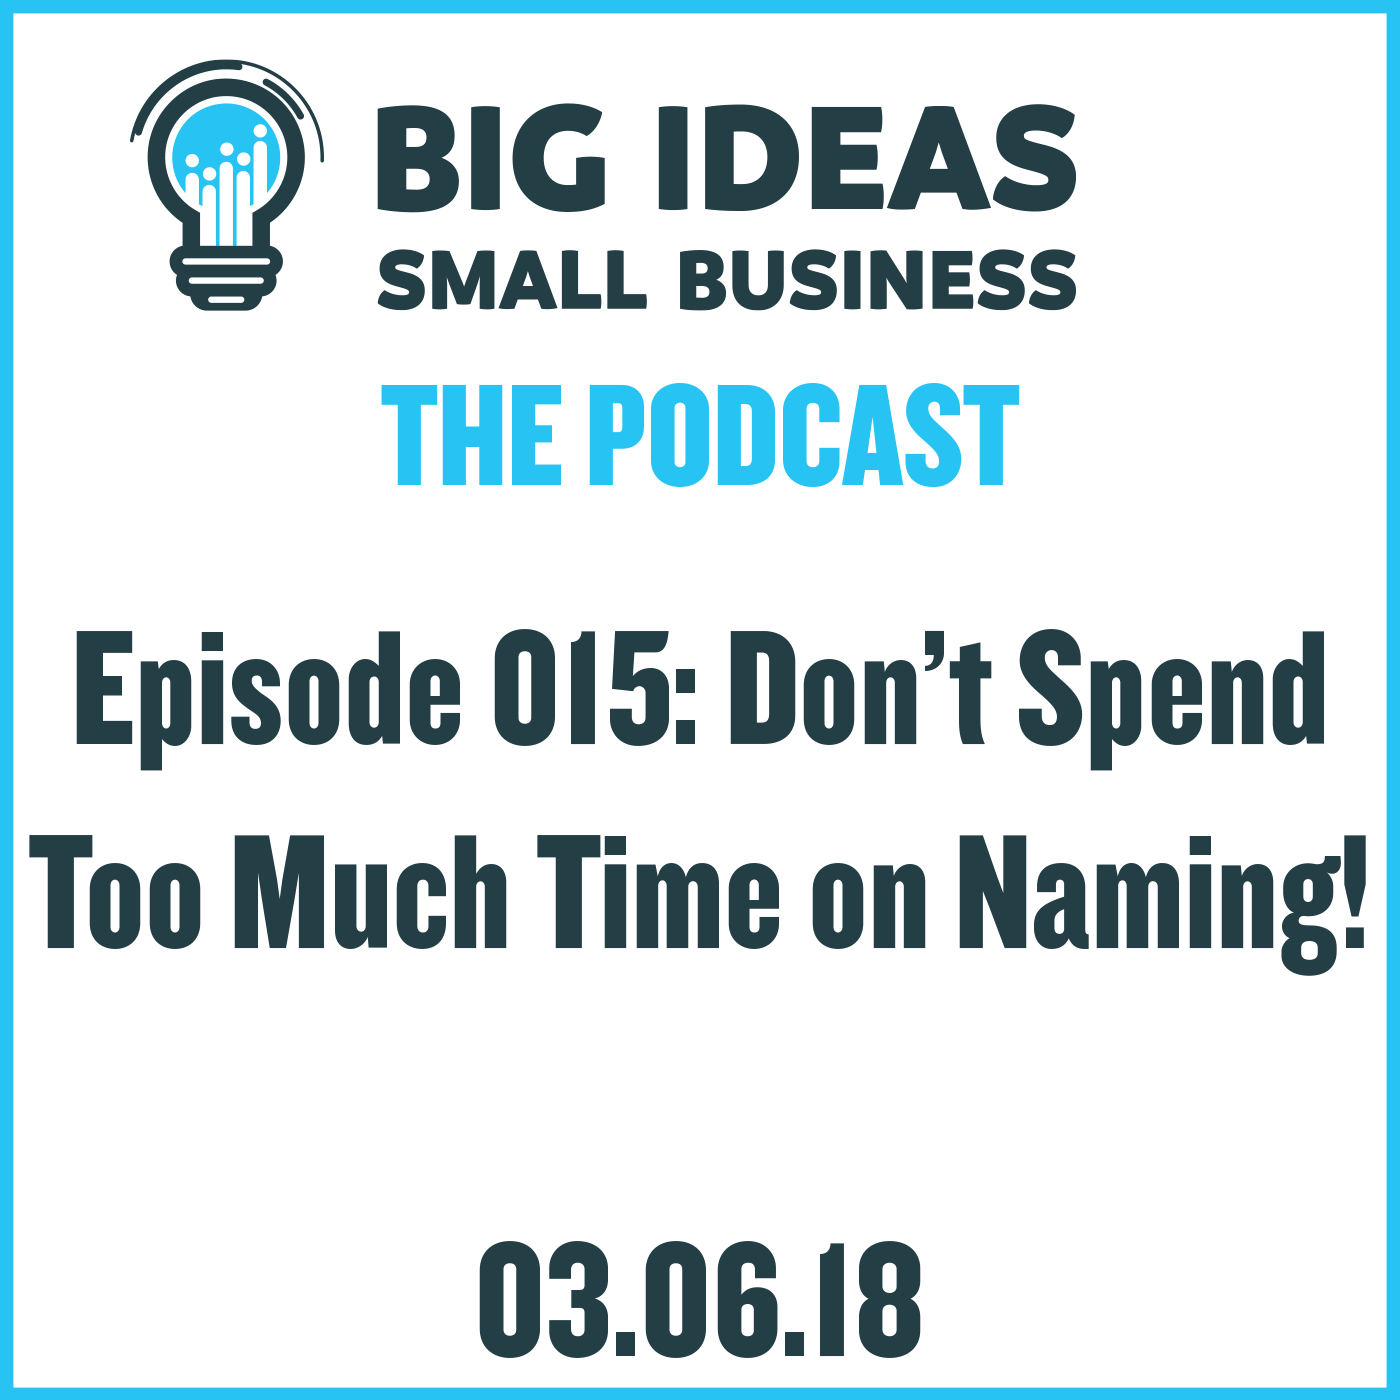 What's in a name? – Big Ideas Small Business Podcast